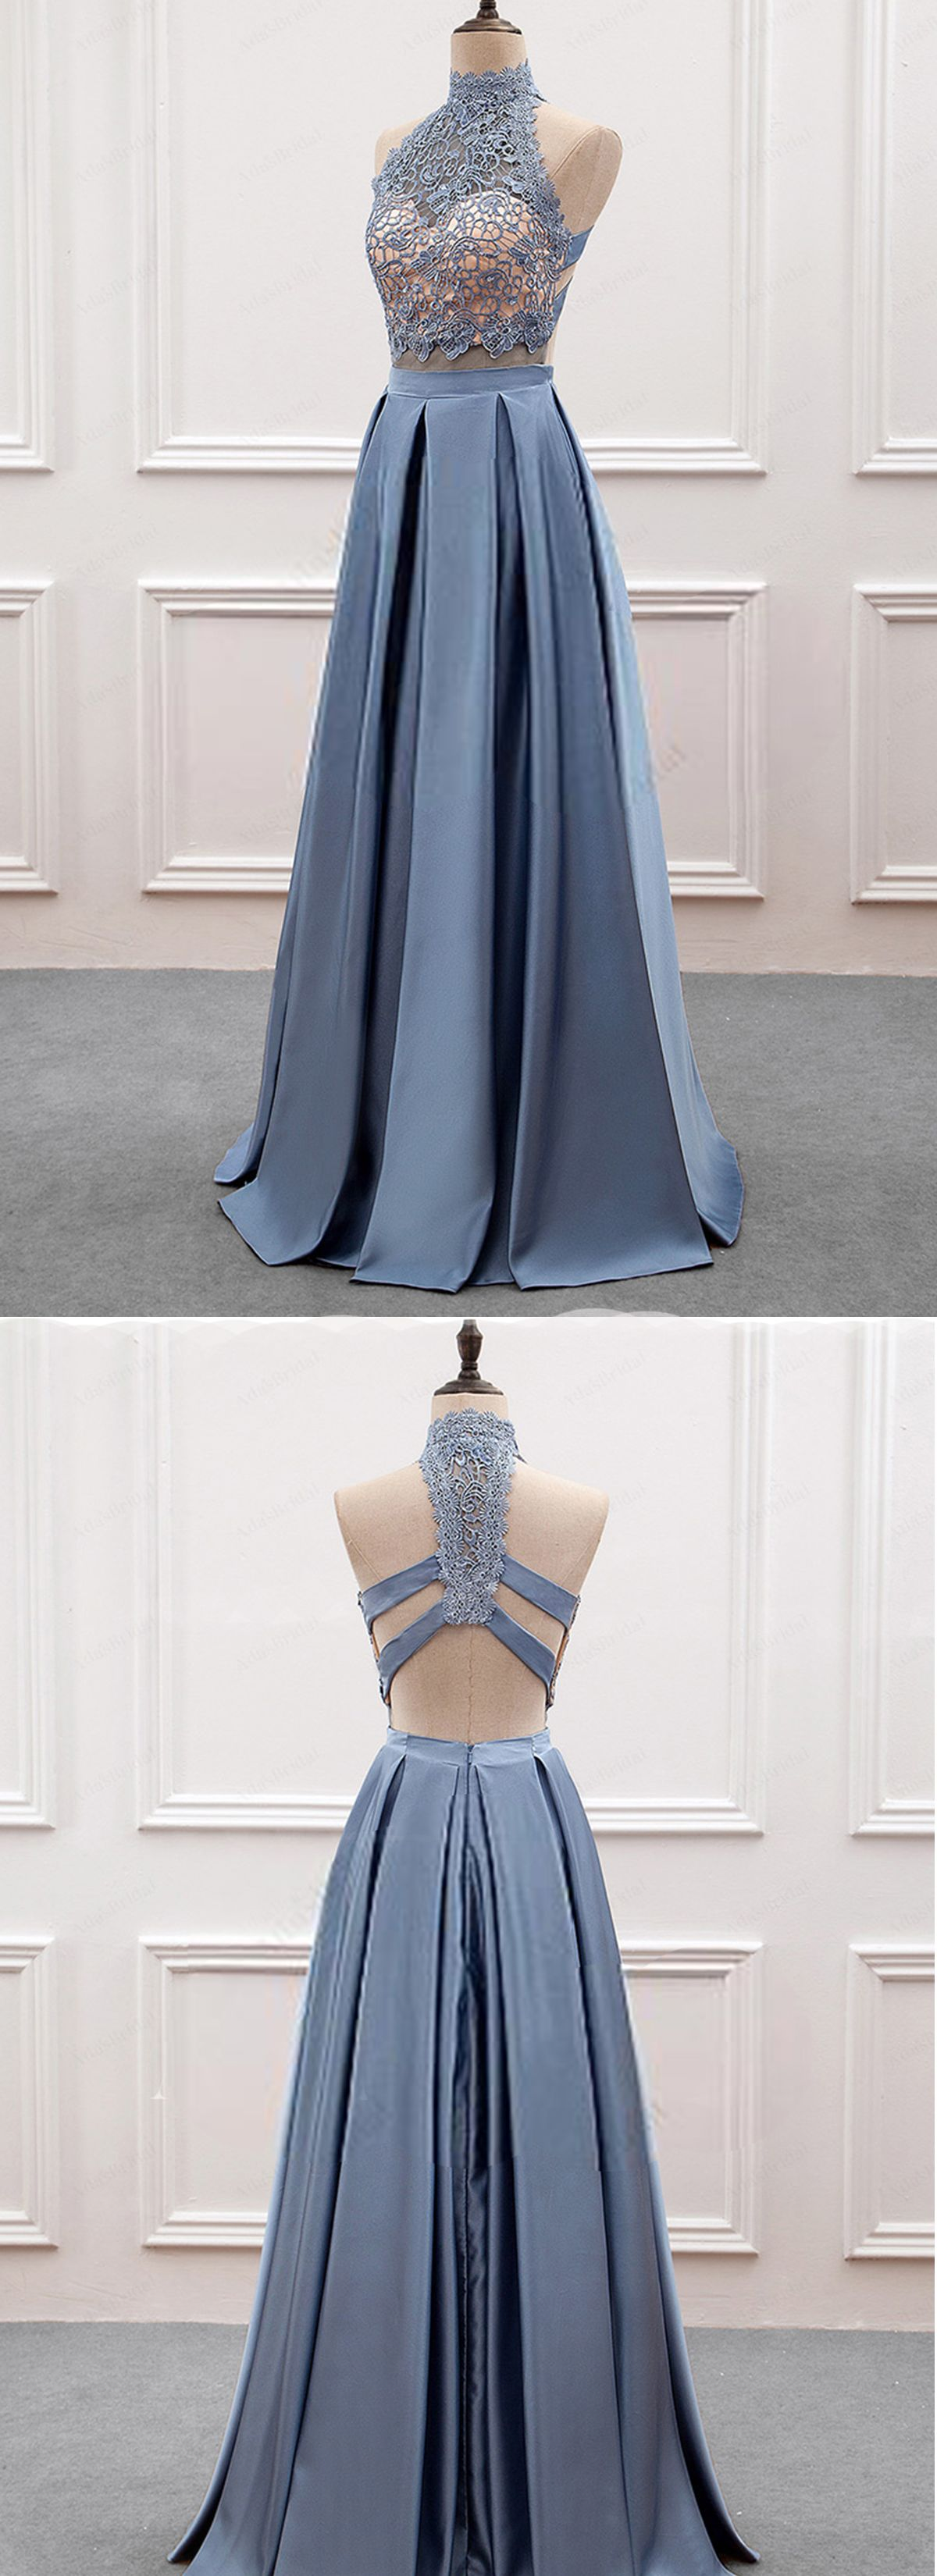 Gray blue satin high neck backless long prom dress lace top evening